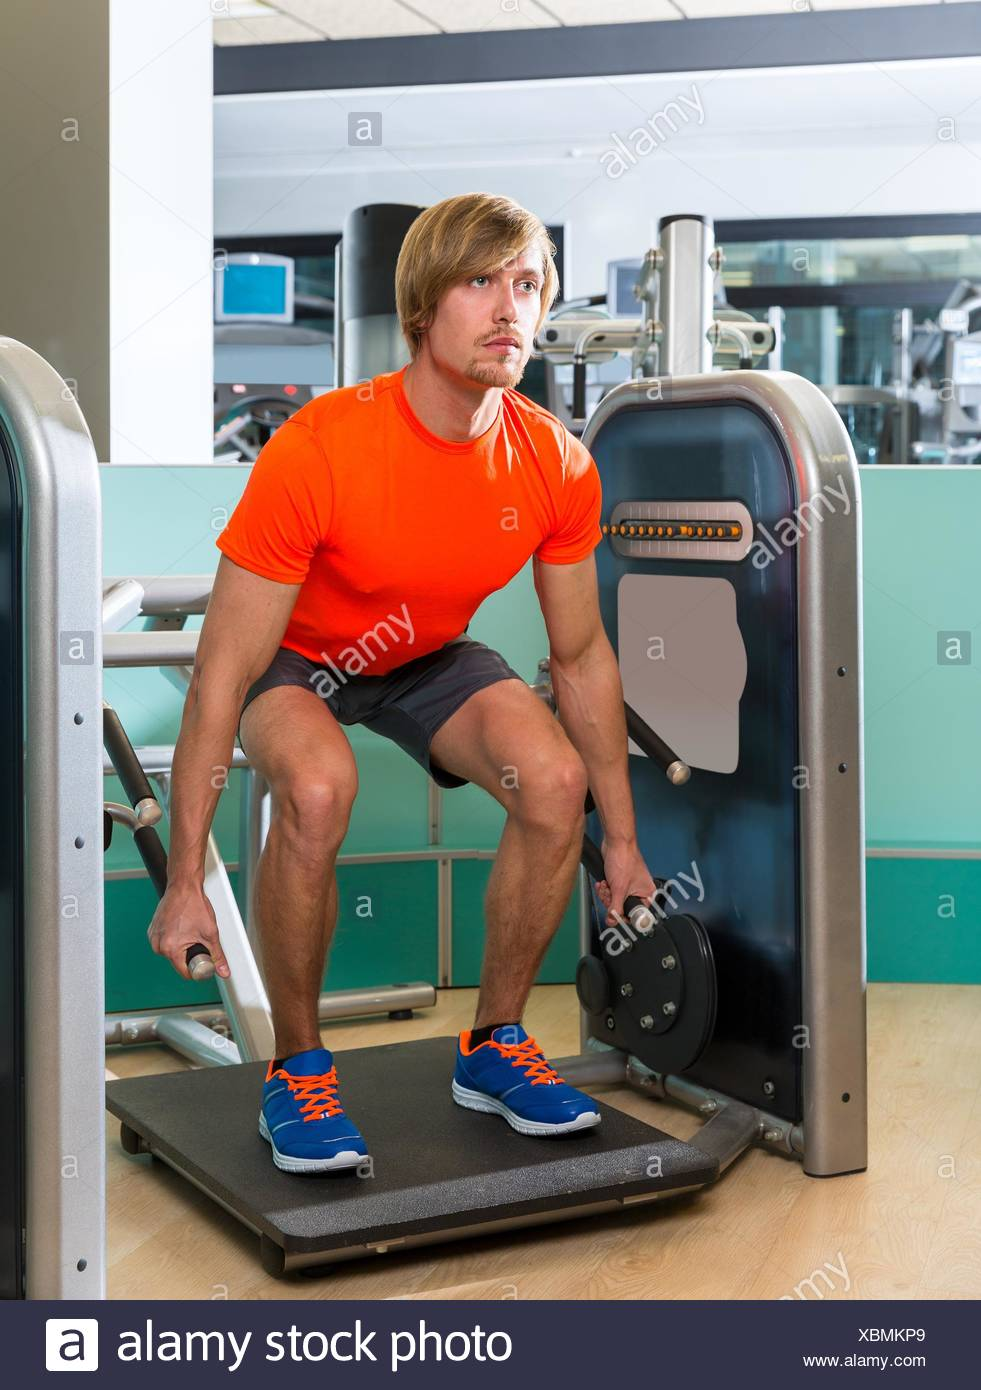 Gym squat machine exercise workout blond man at indoor. - Stock Image